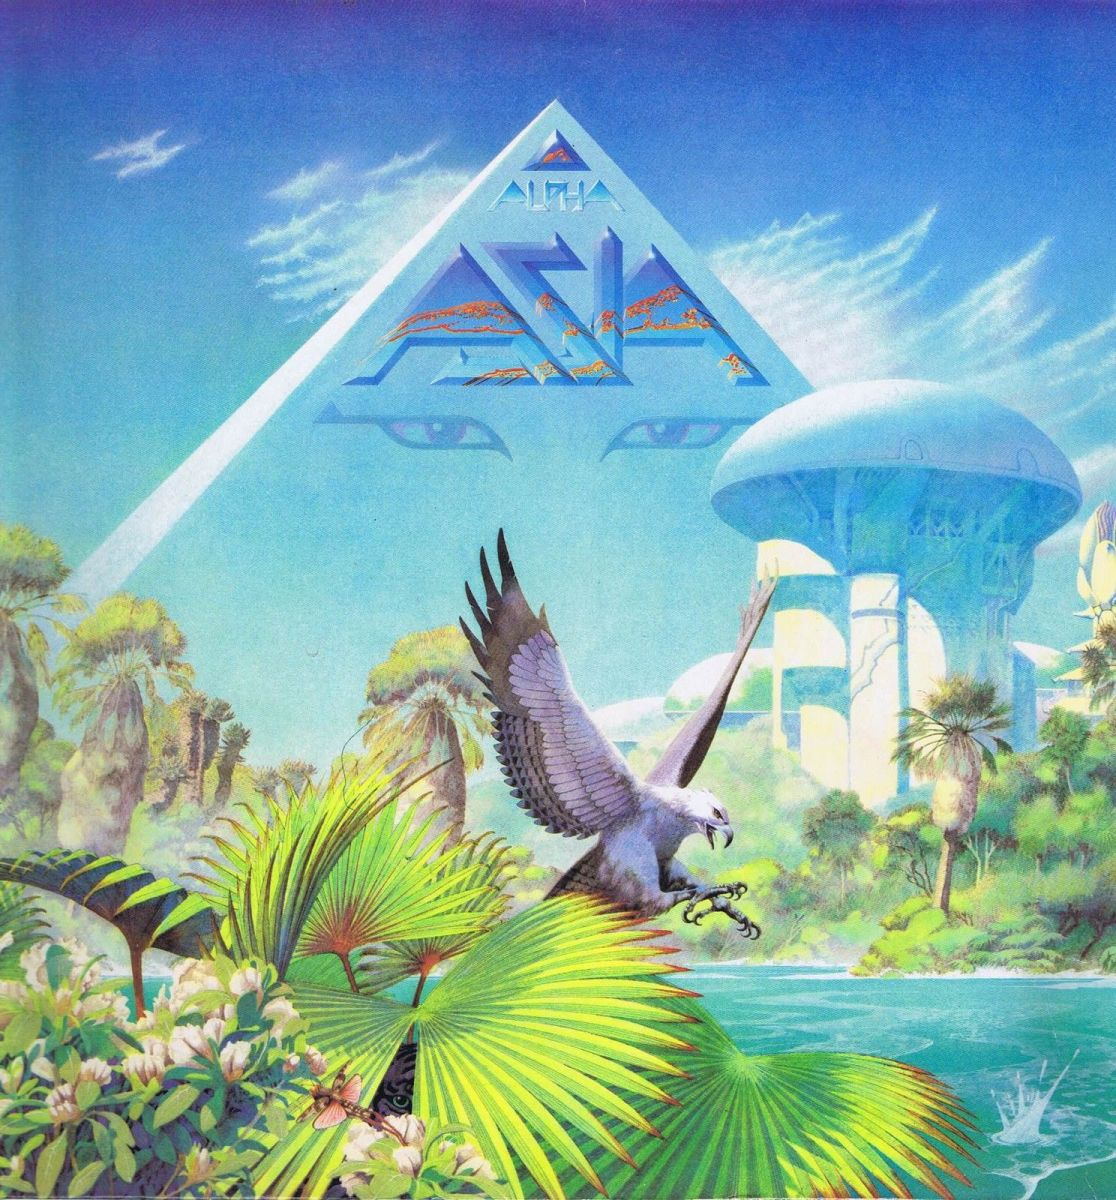 "Asia ""Alpha"" Geffen Records GEF 22508 12"" LP Vinyl Record, UK Pressing (1983) Album Cover Art & Design by Roger Dean"